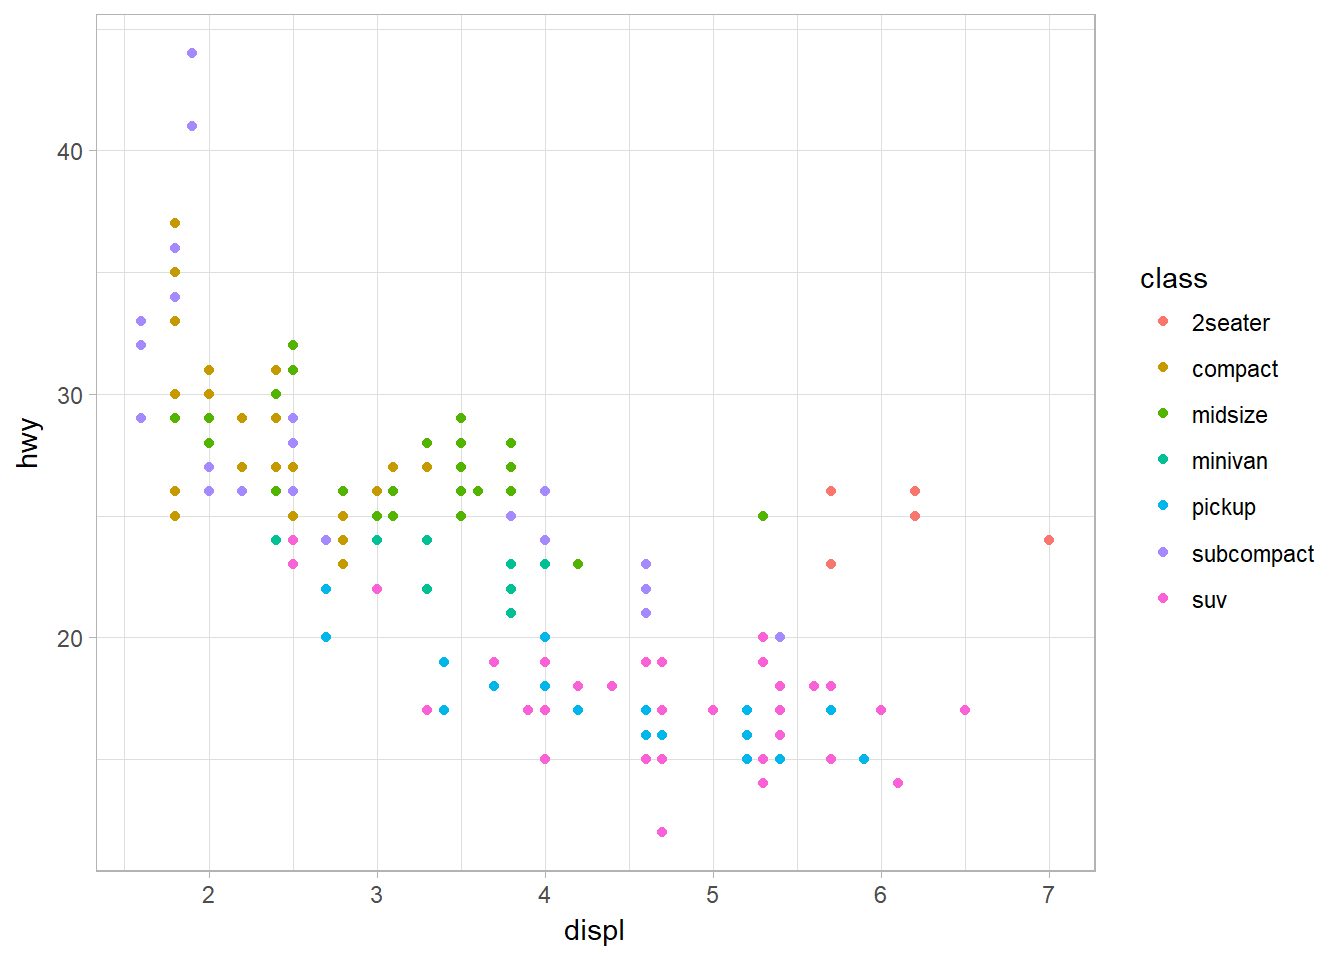 Mapping aethsthetic (color) to a third variable, class.